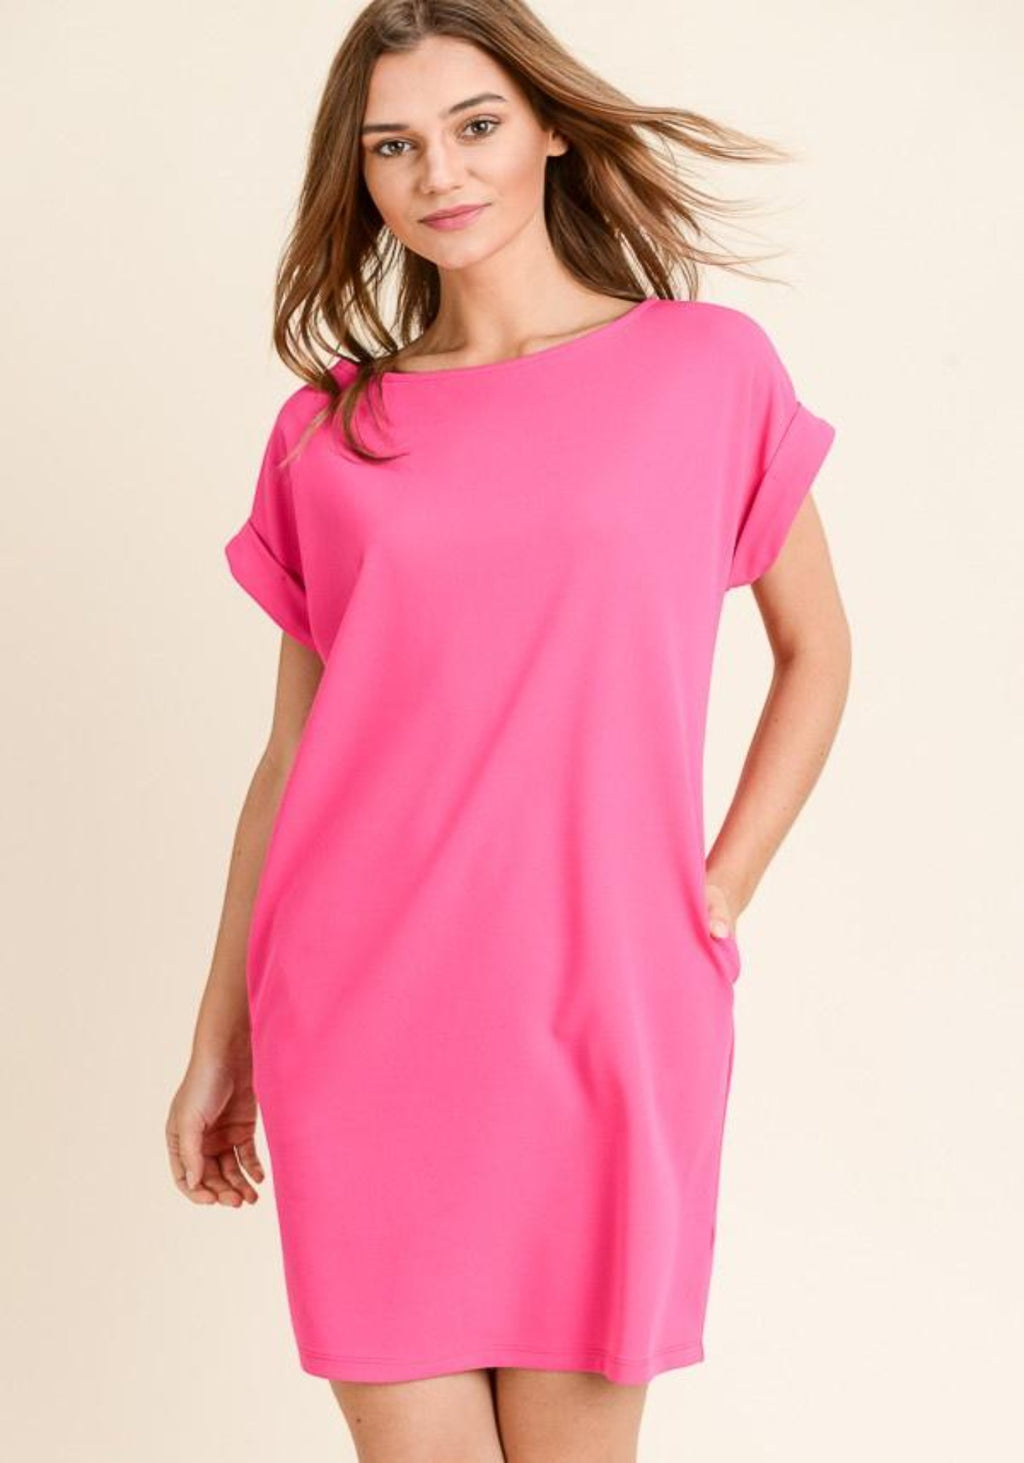 Fuchsia Shirt Dress-Bella Lucca Boutique